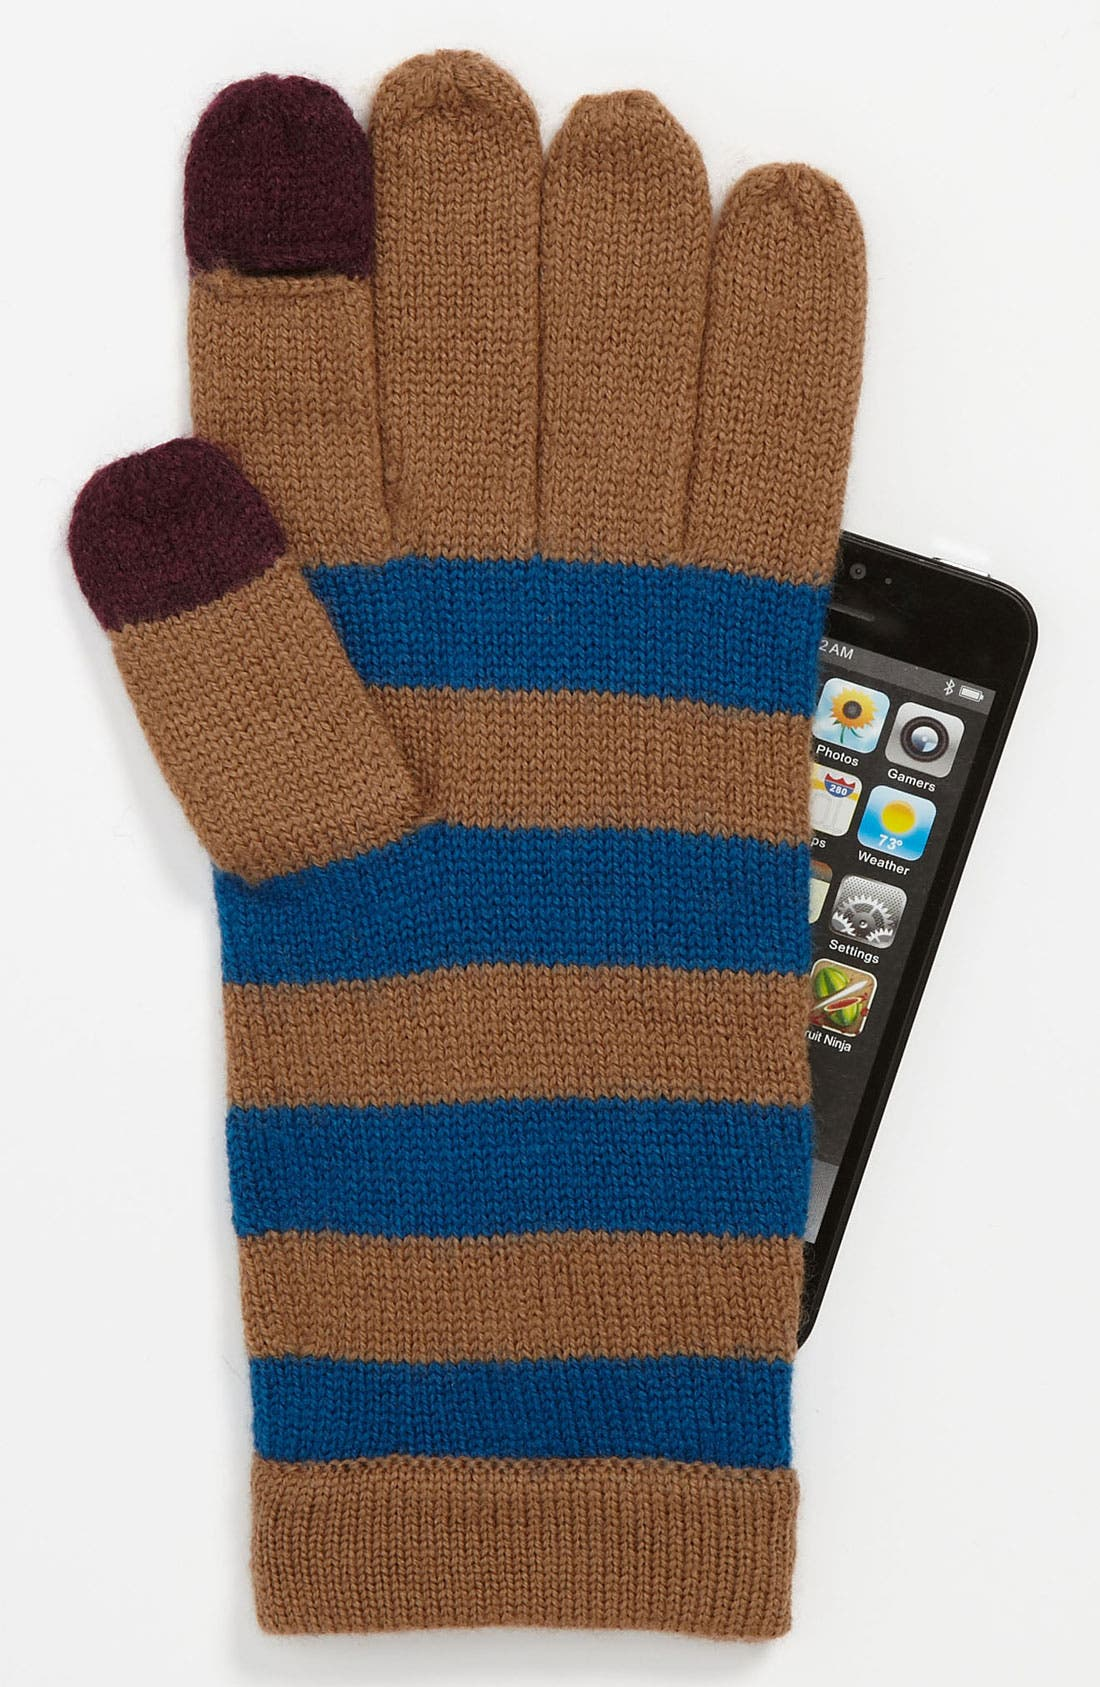 Alternate Image 1 Selected - MARC BY MARC JACOBS 'MBMJ' Merino Wool Tech Gloves